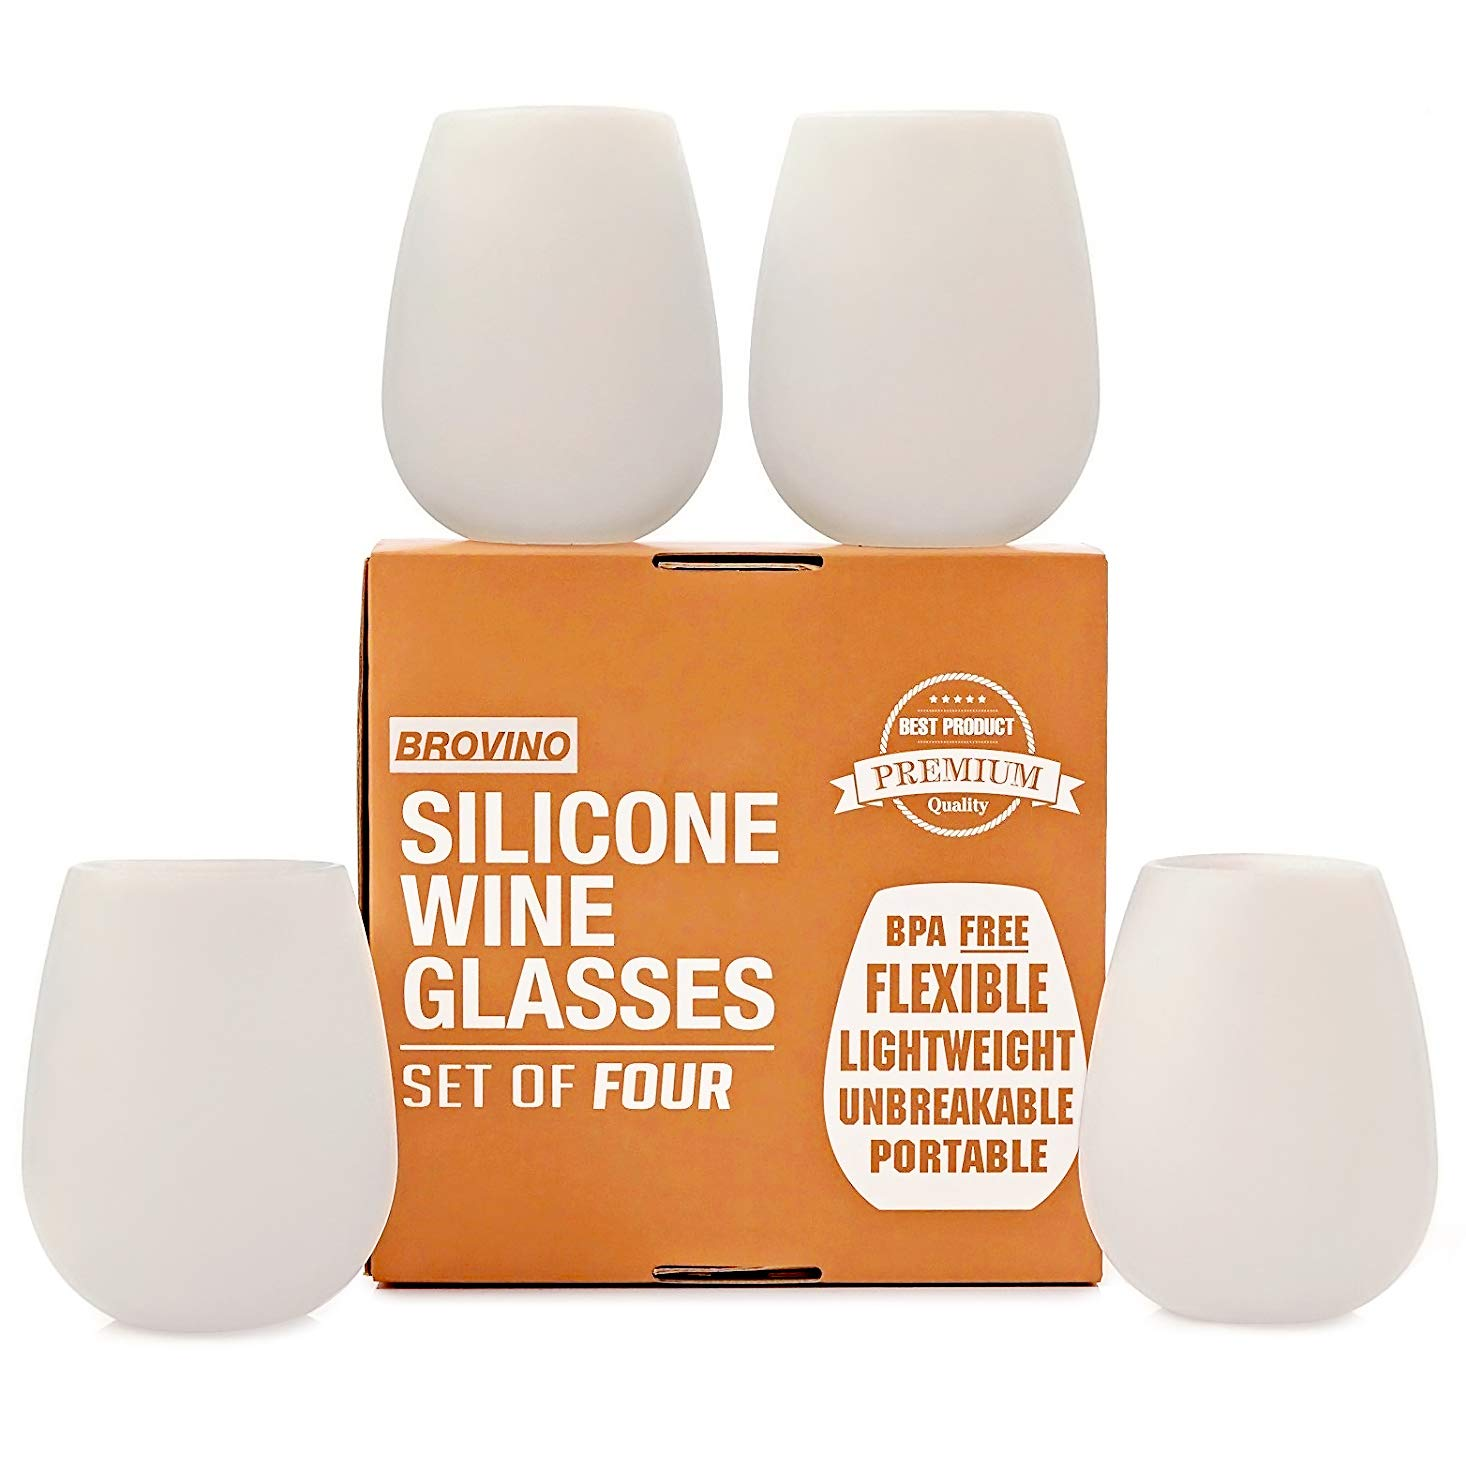 Silicone Wine Glasses - Set of 4 - Unbreakable Outdoor Rubber Wine Cups: 14 oz, Clear Silicone. 100% Dishwasher Safe - Shatterproof Glass for Travel, Outdoor, Picnic, Pool, Boat, Camping